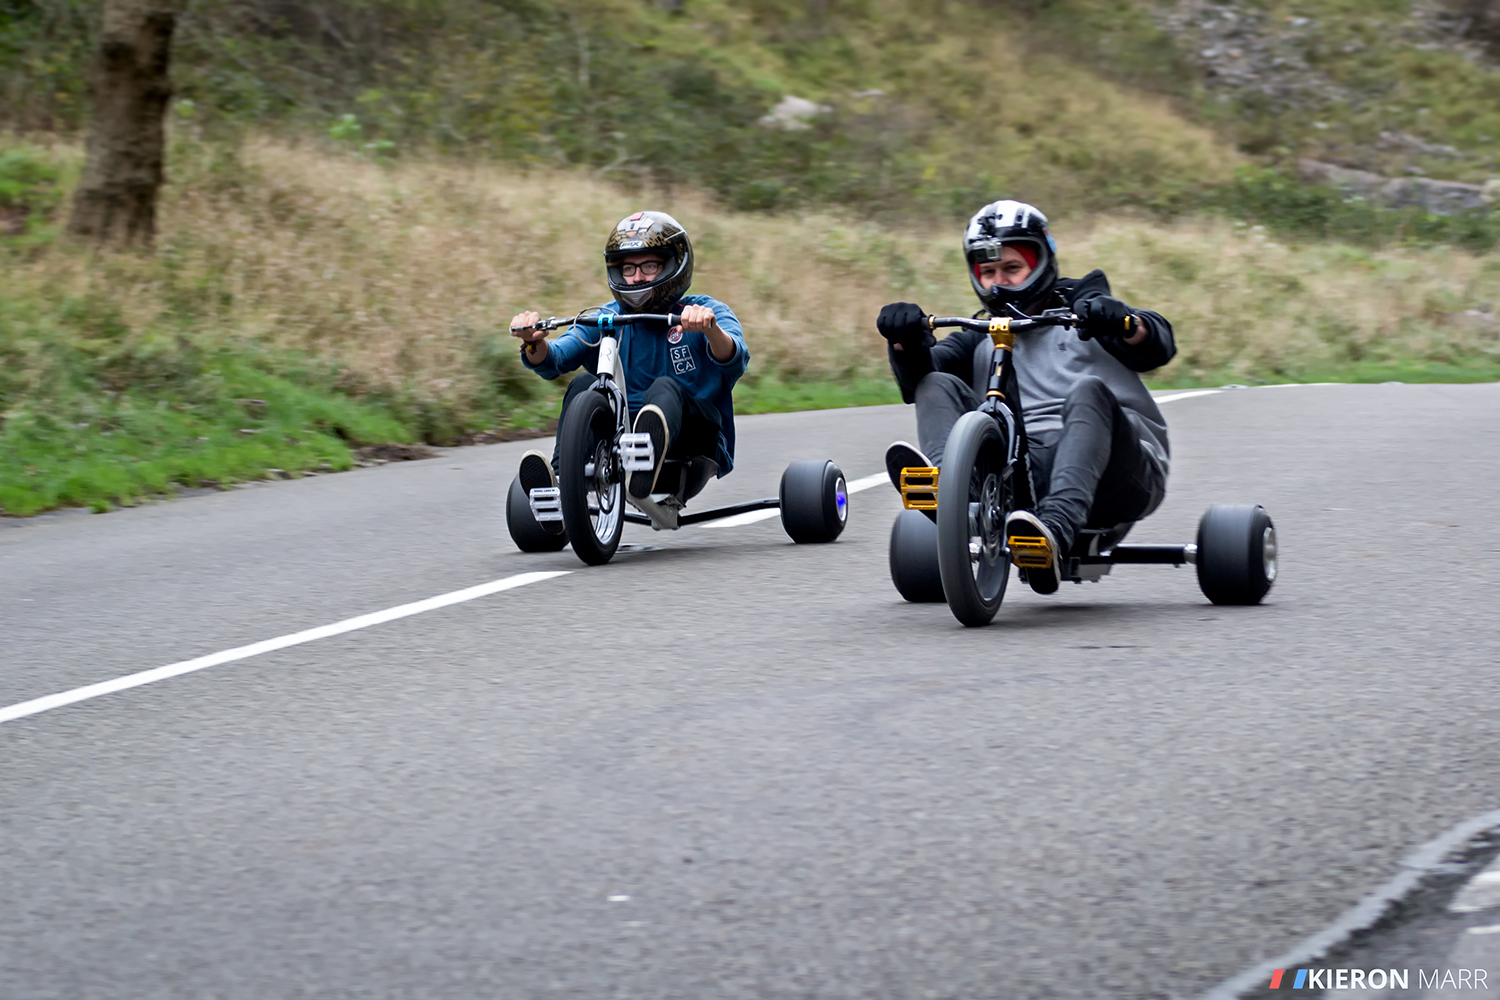 Two riders drifting together